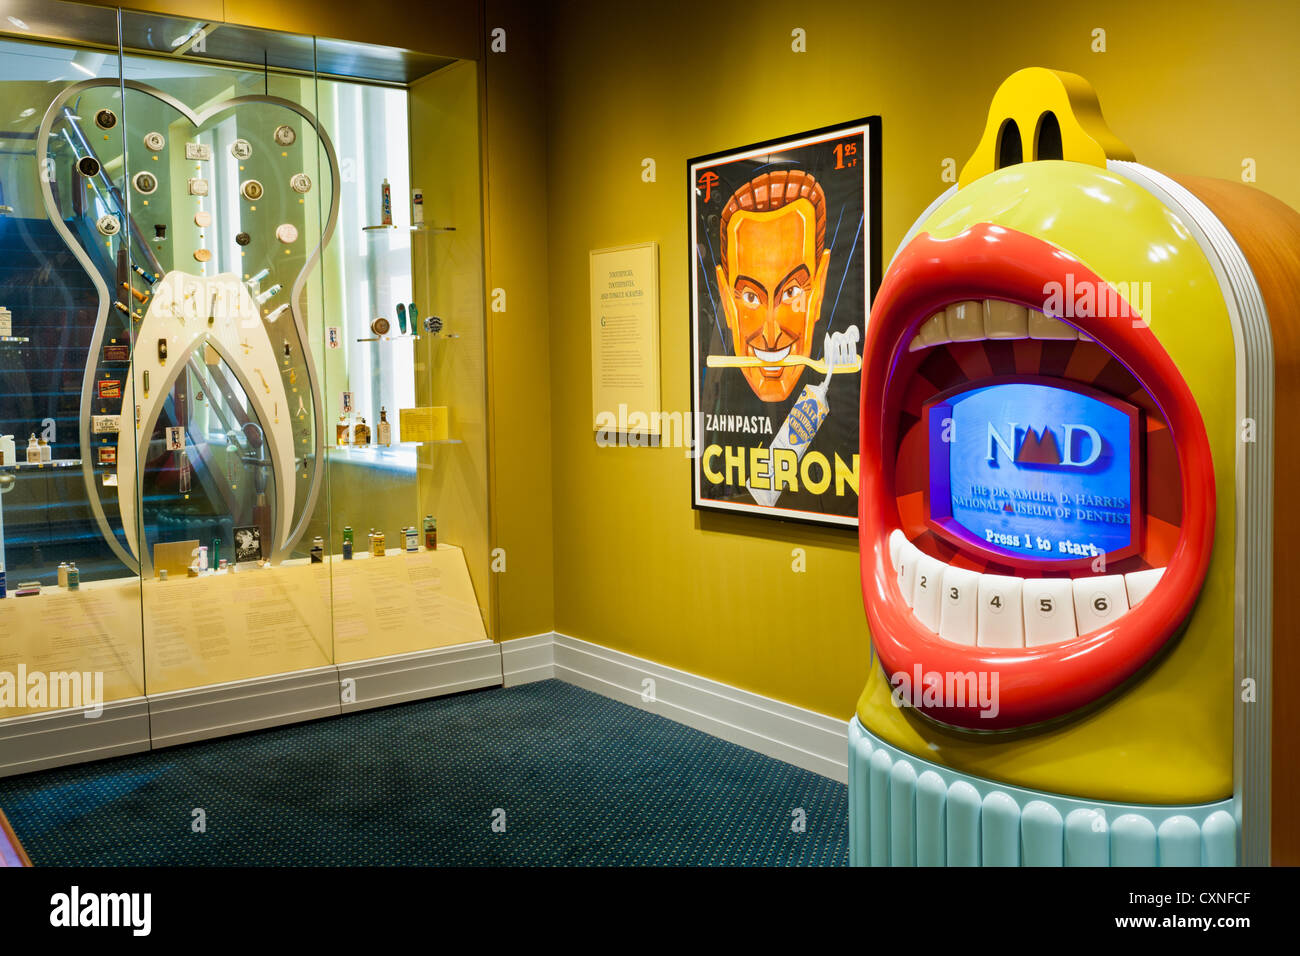 The Dr. Samuel D. Harris National Museum of Dentistry, Baltimore, Maryland - Stock Image